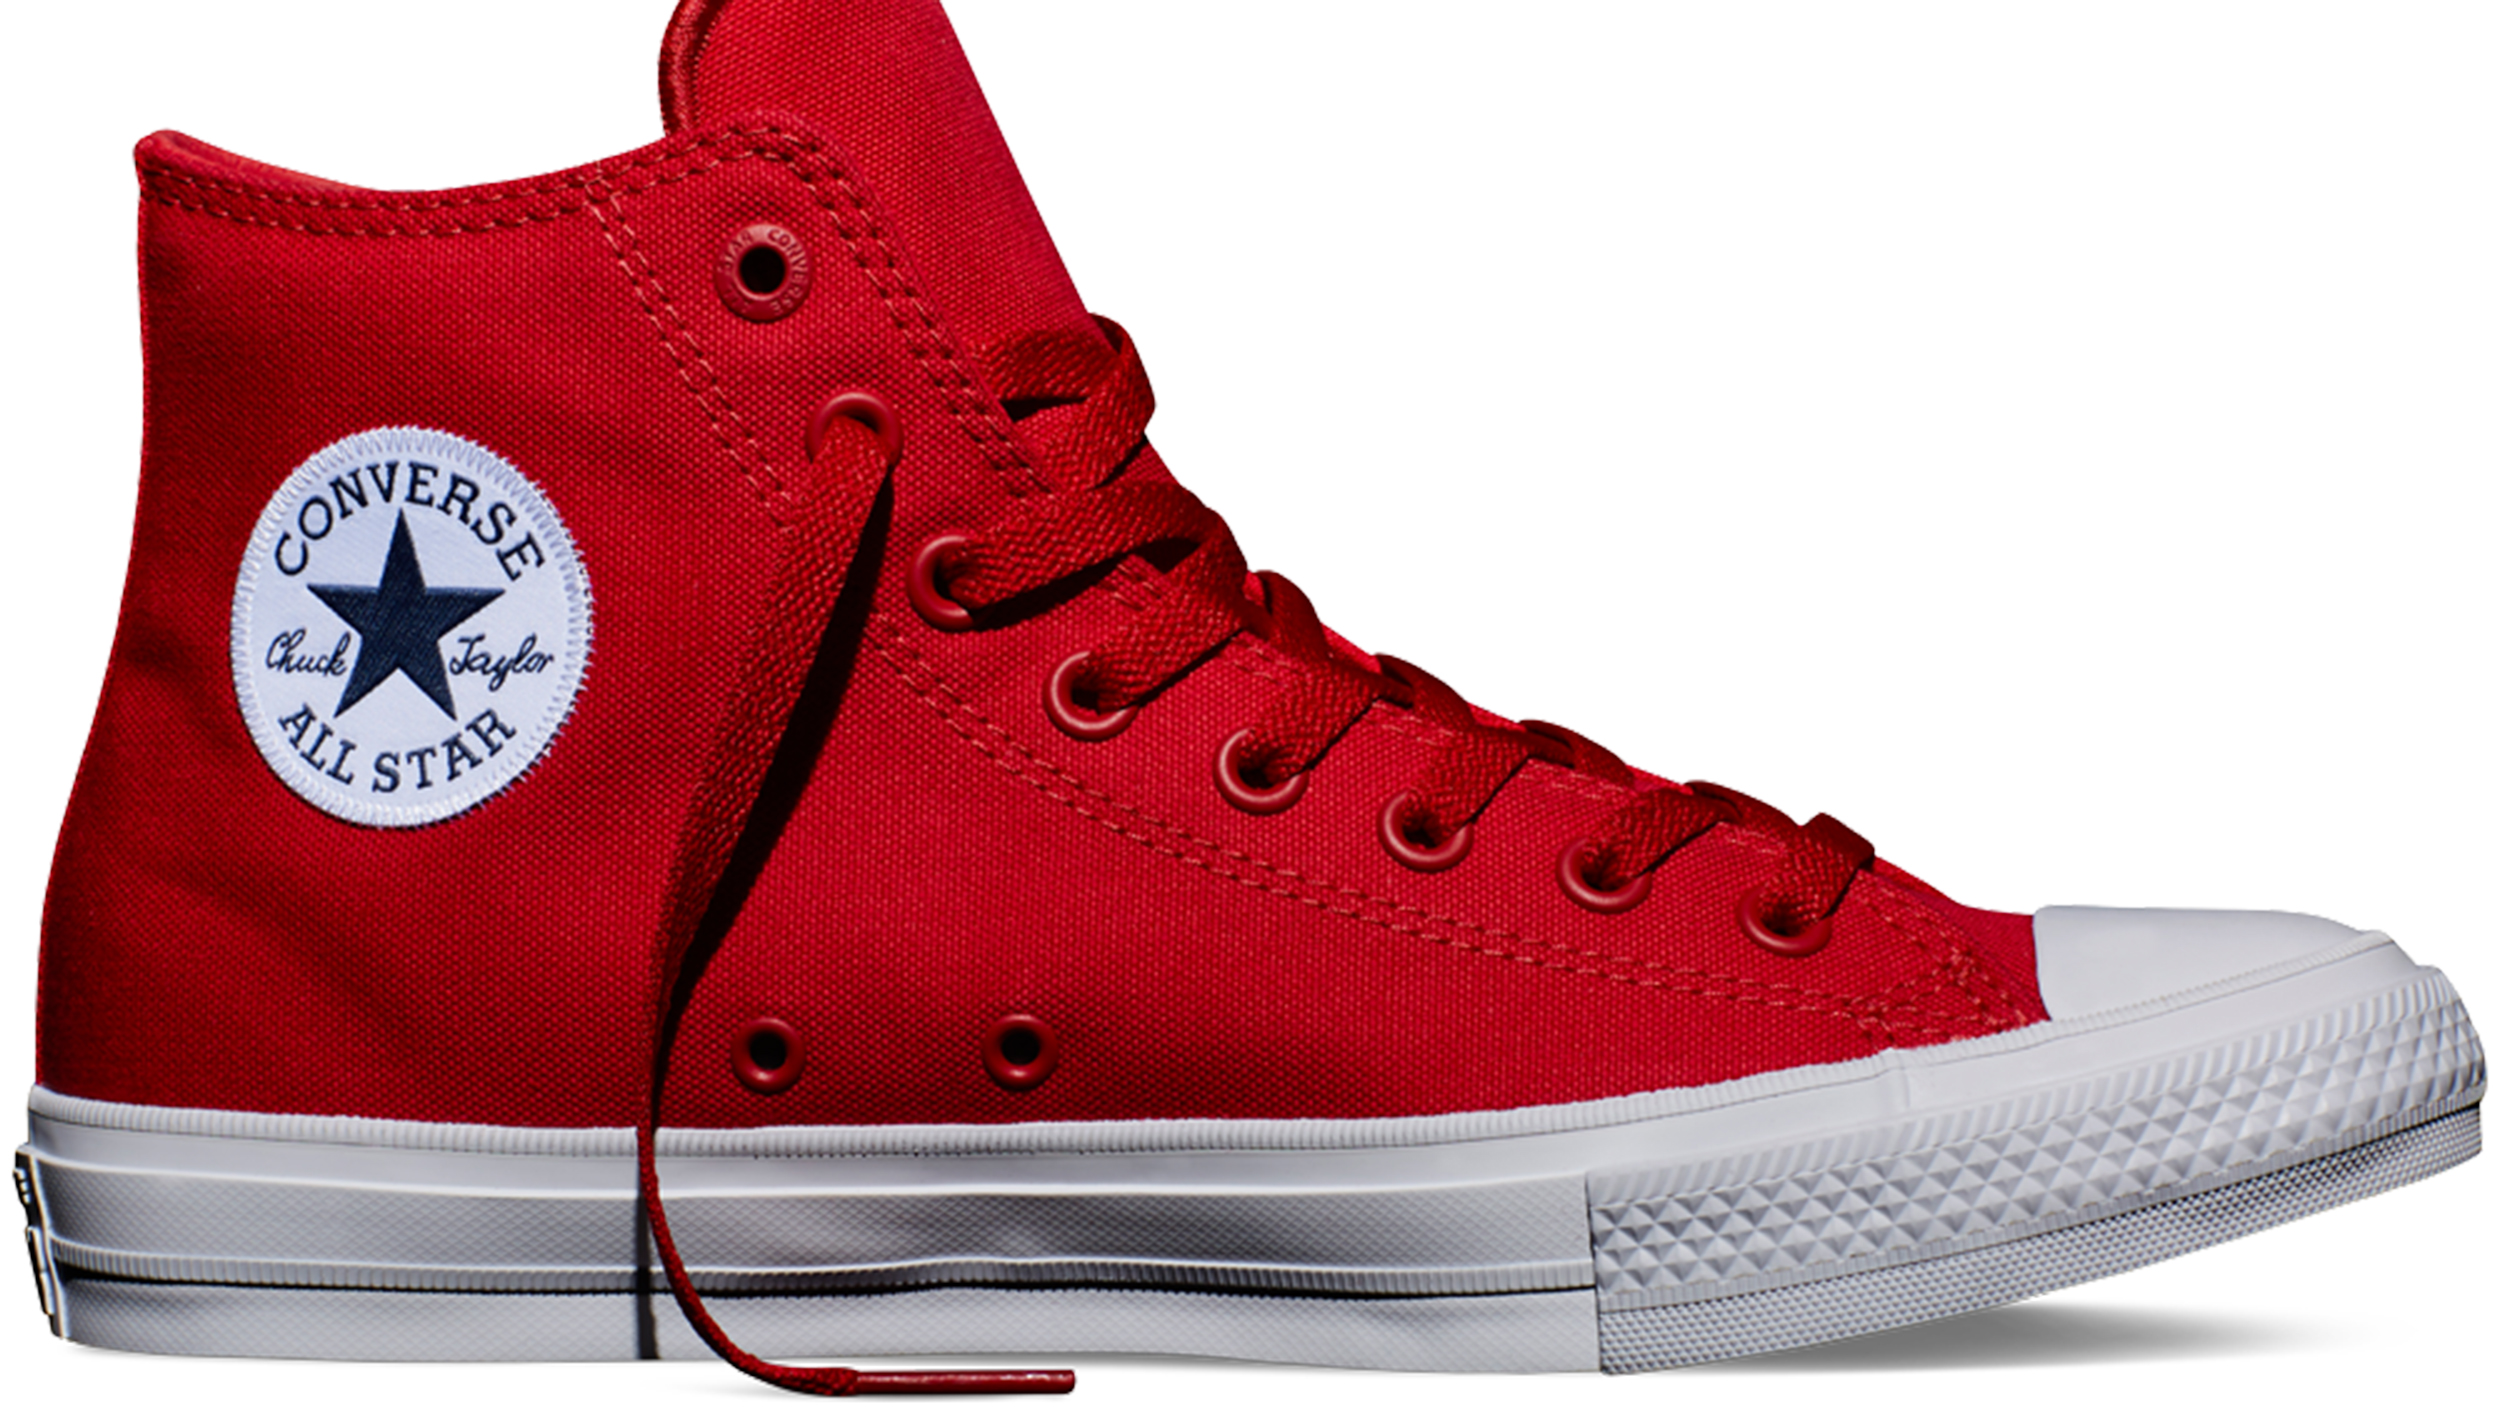 Converse unveils the Chuck Taylor II, a comfy makeover of the classic sneakers - TODAY.com